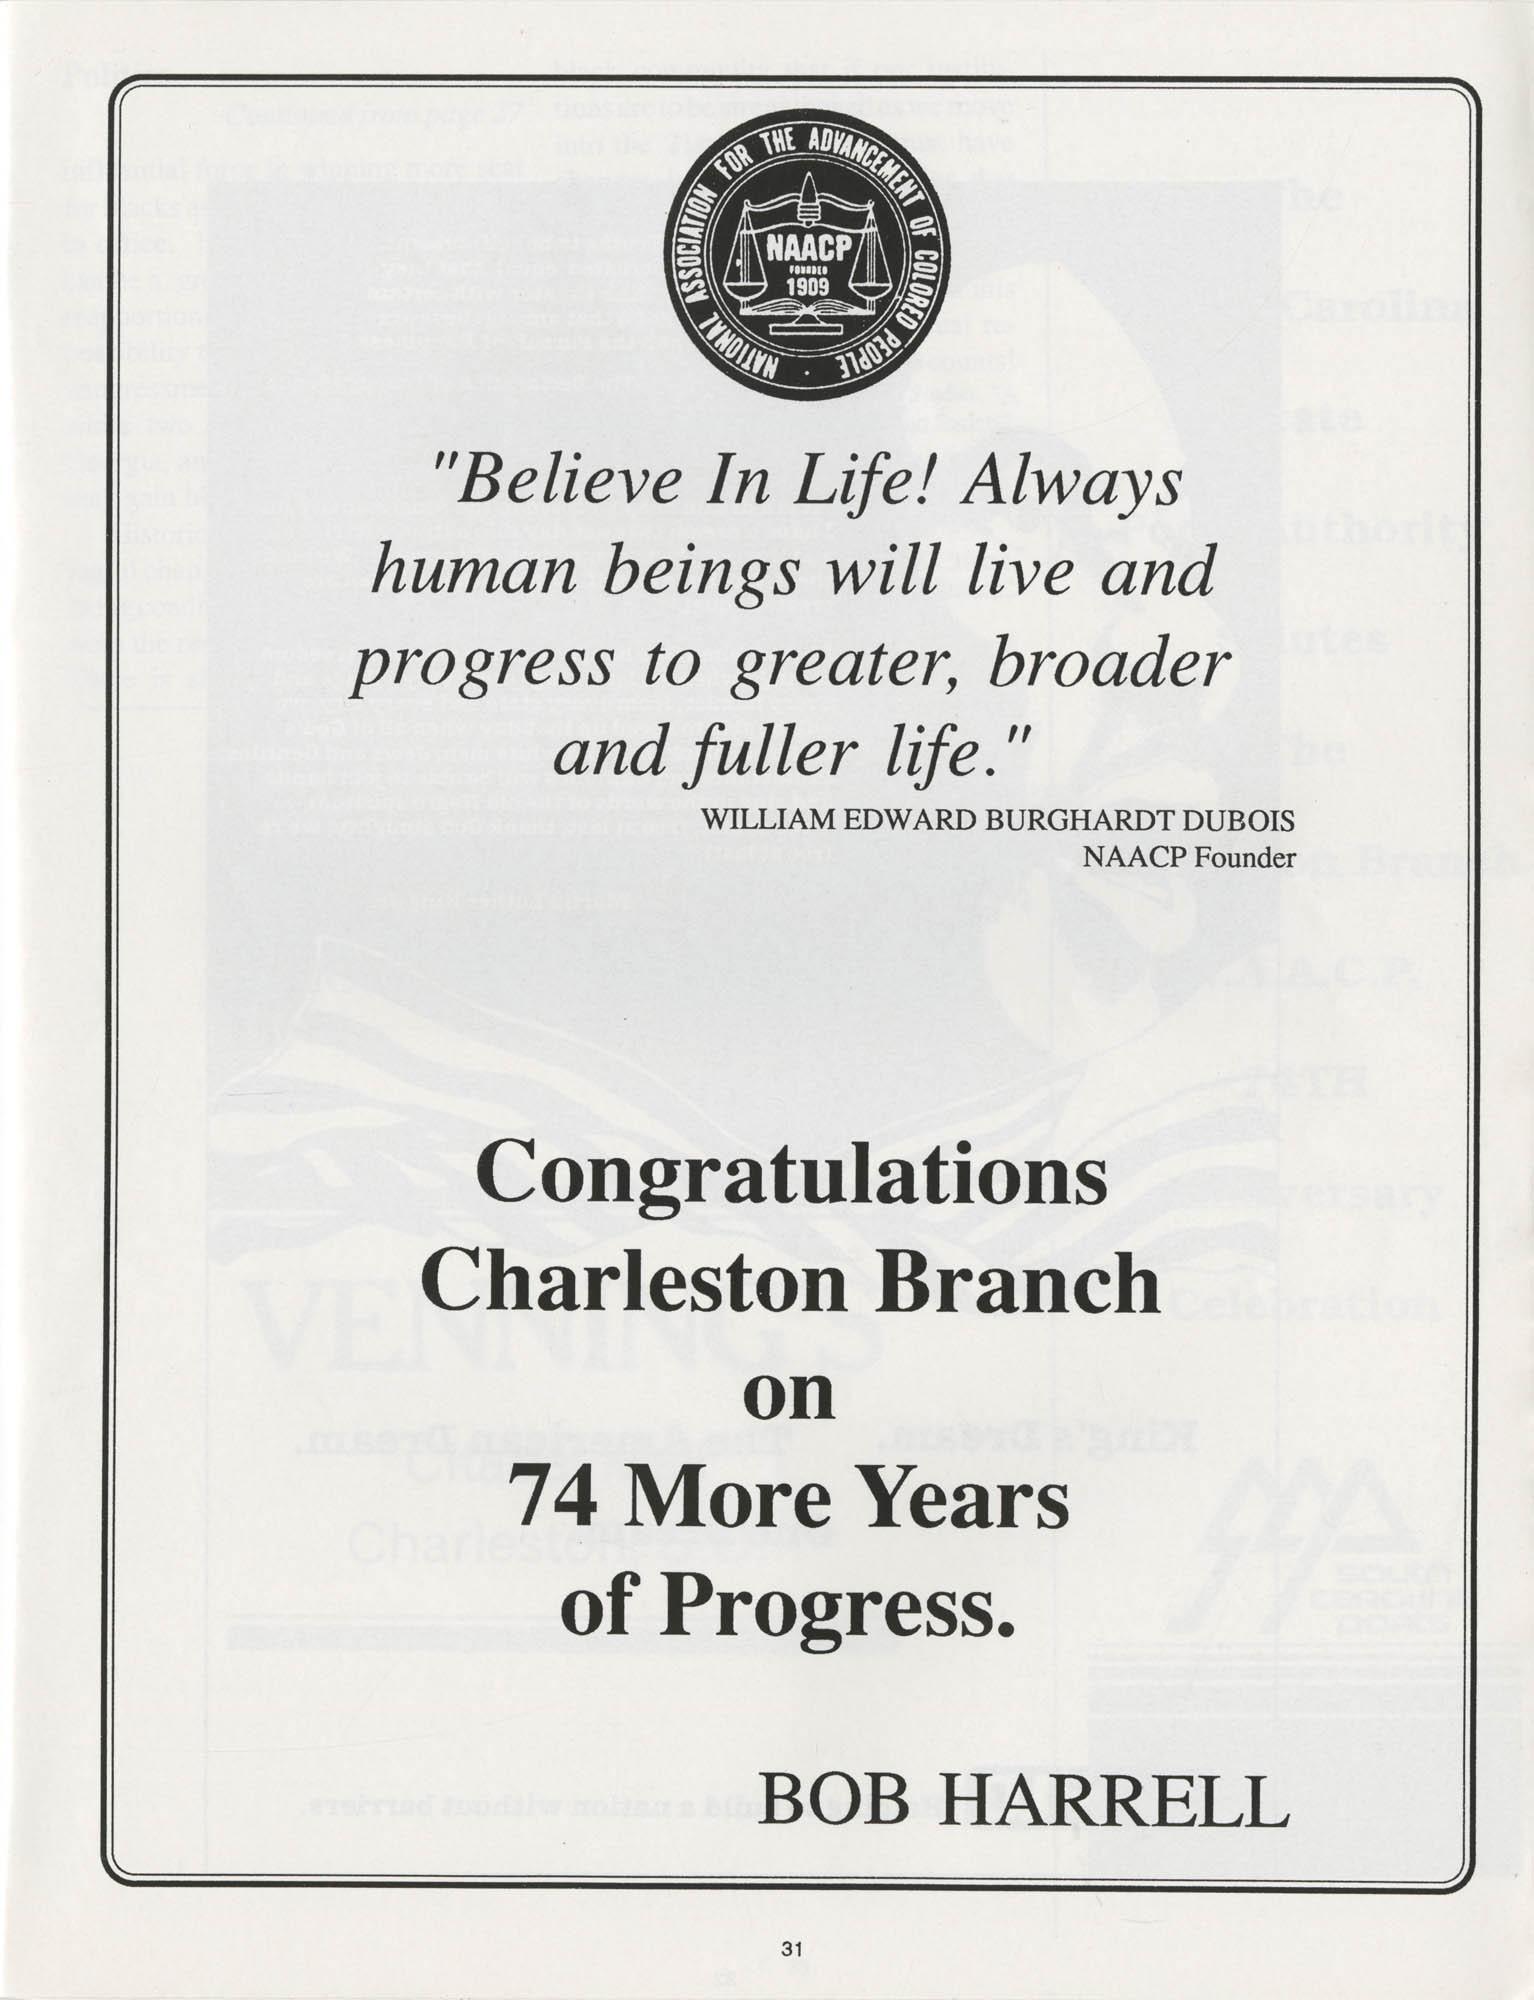 1990 NAACP Freedom Fund Magazine, Charleston Branch of the NAACP, 74th Anniversary, Page 31